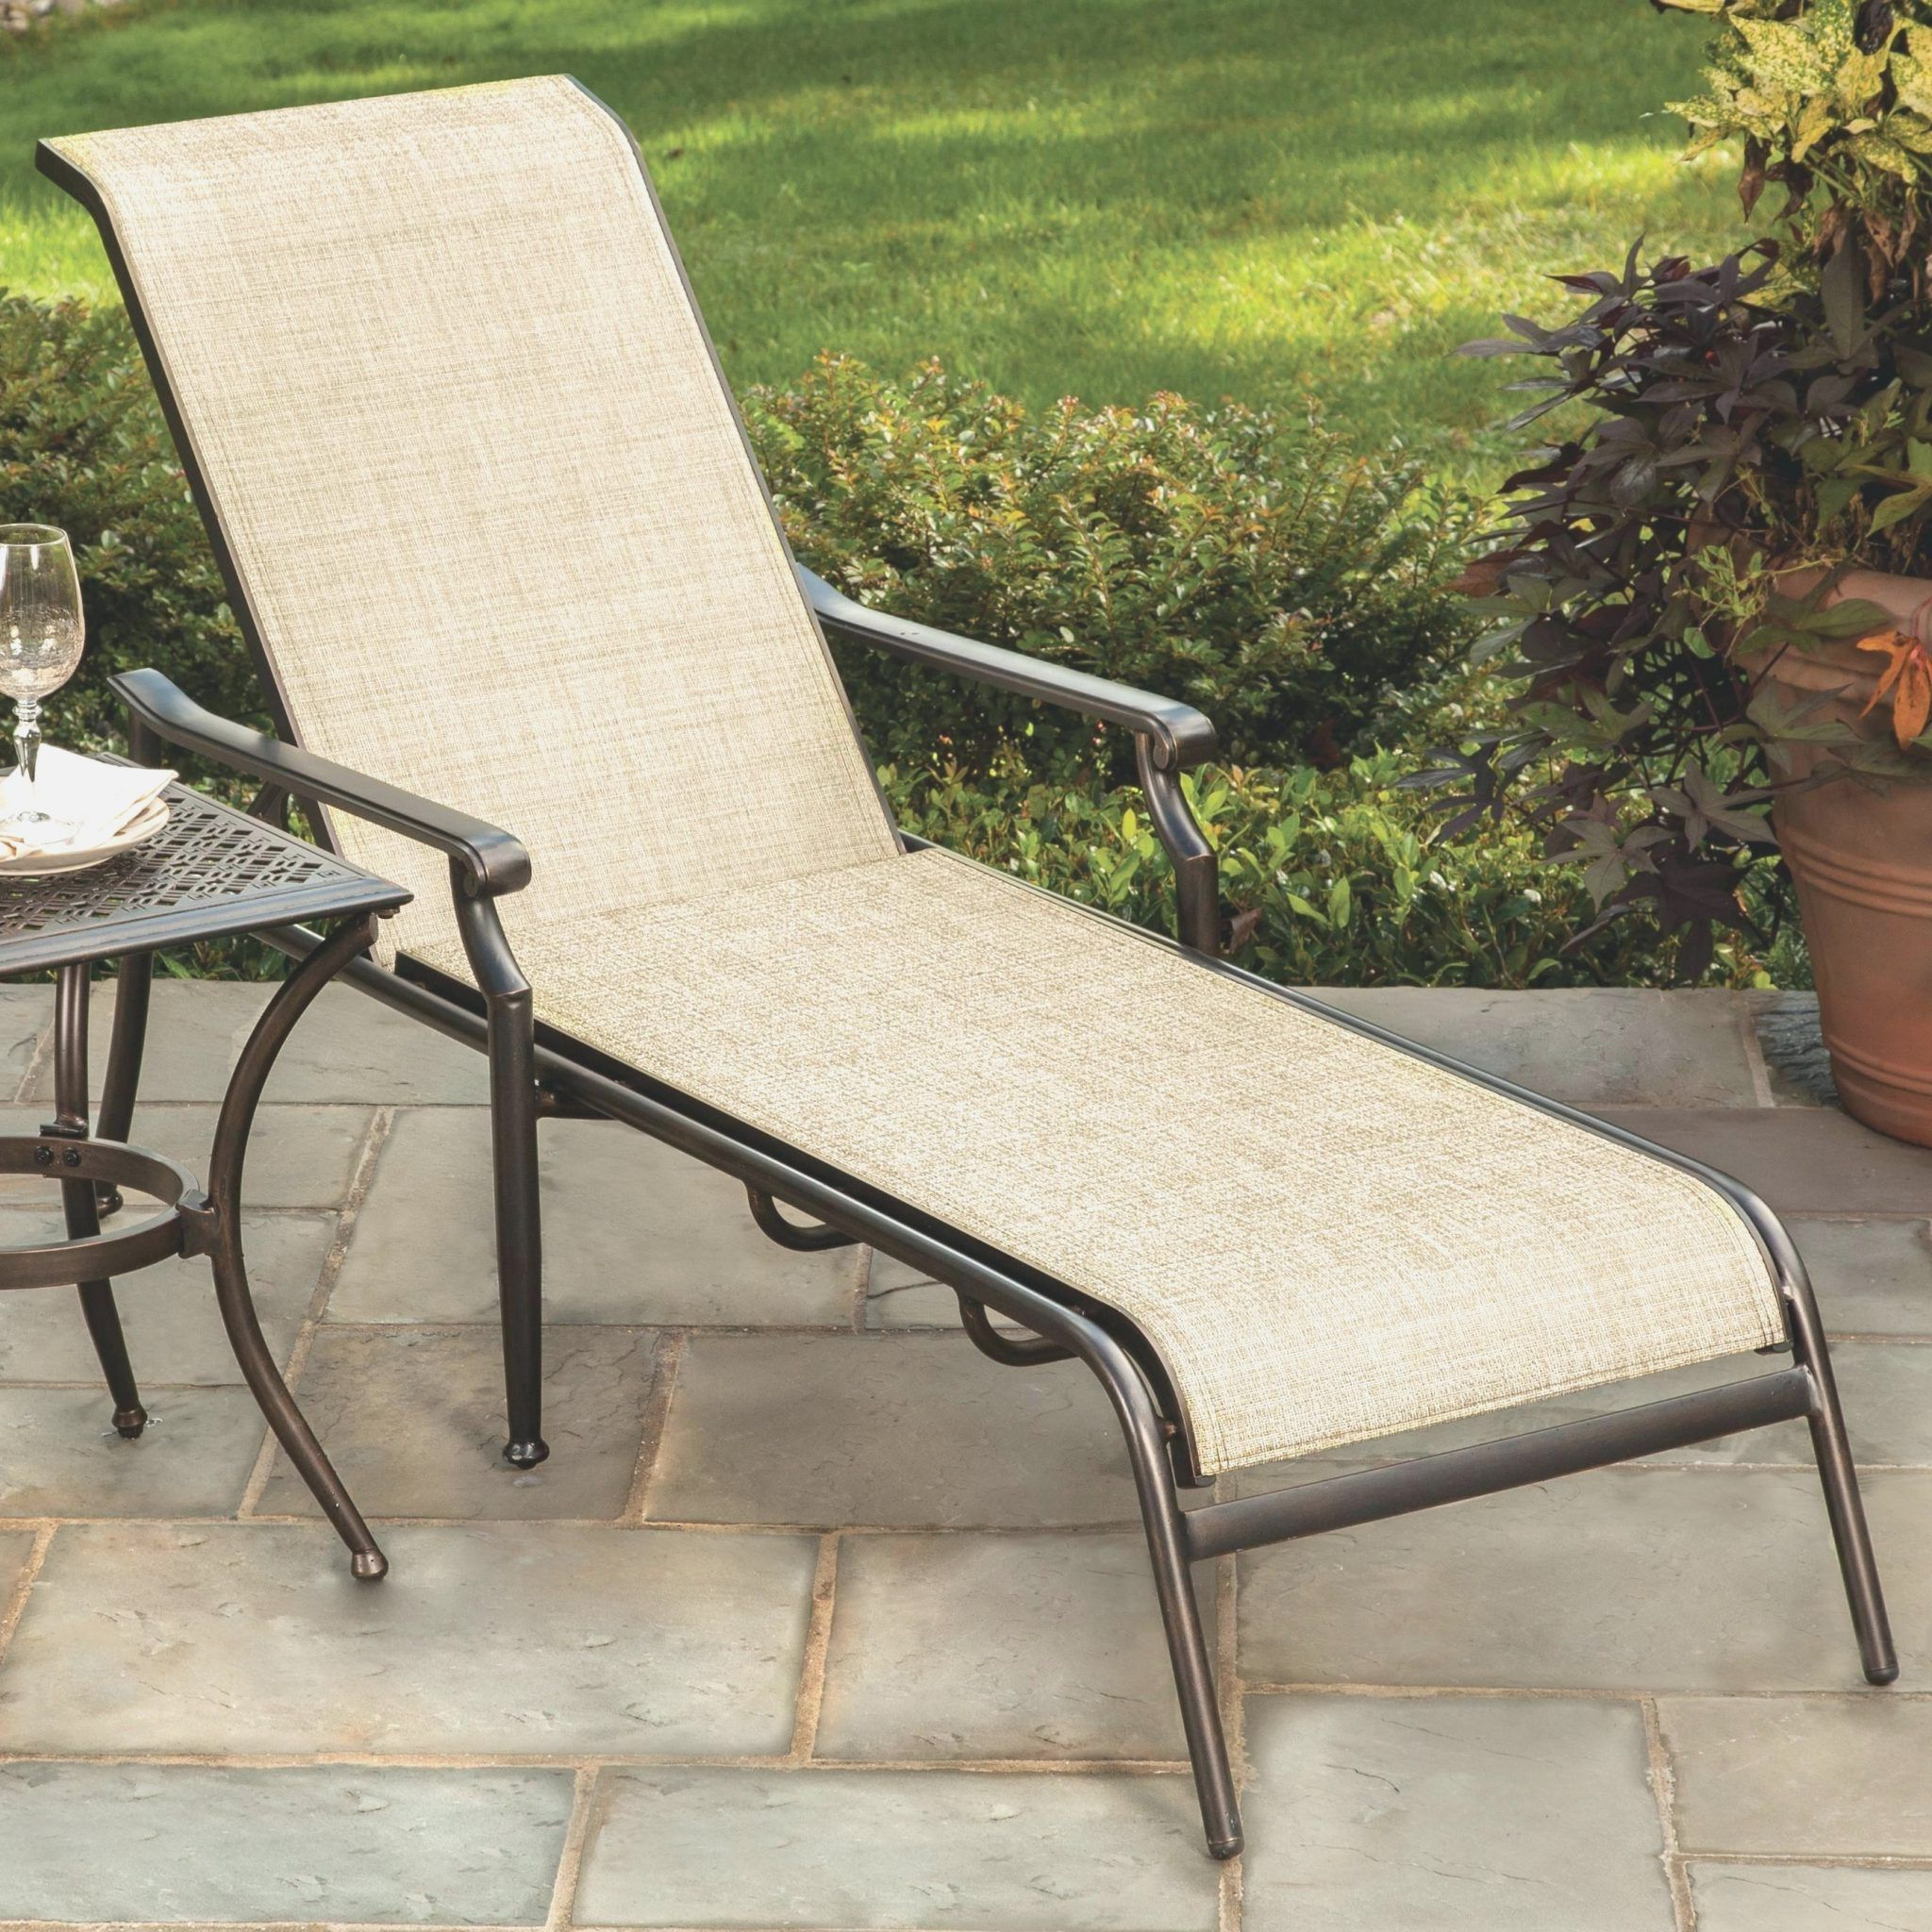 Cosco Outdoor Aluminum Chaise Lounge Chairs With Fashionable Pool Lounge Chairs Costco – Costco Poolside Lounge Chairs (View 20 of 25)